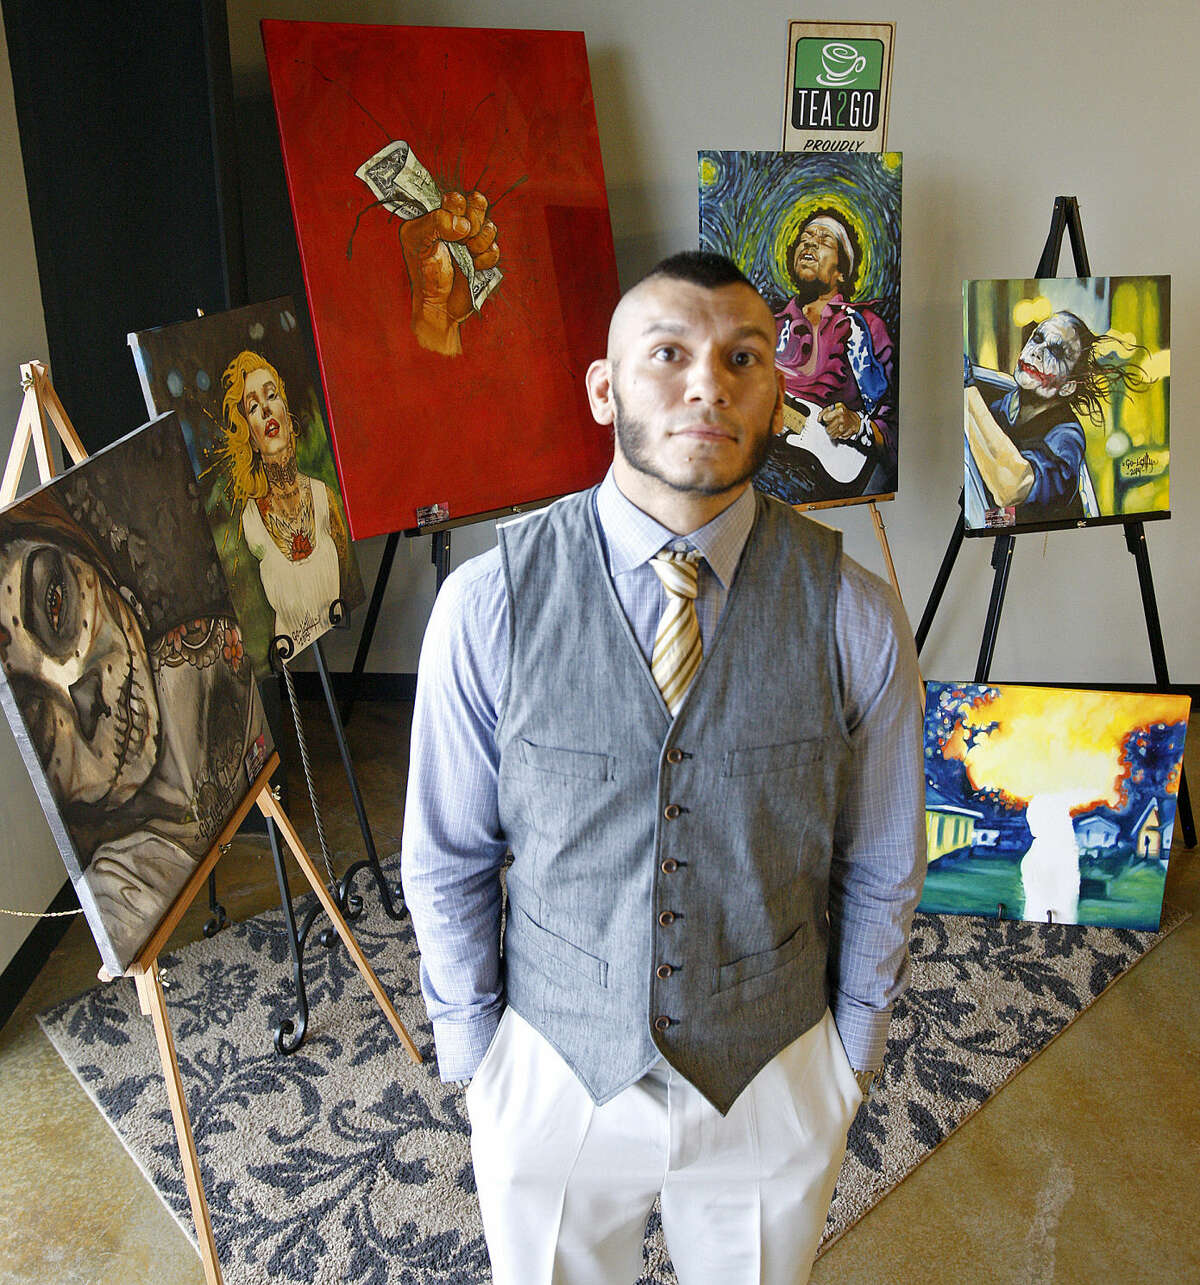 Local artist David Go-Lightly Lopez will display and sell his work at Tea2Go on Saturday as a fundraiser for Zadee Lopez, a 2-year-old with stage 4 cancer. Go-Lightly Lopez is pictured with some of his pieces in portrait Wednesday, April 22, 2015 at Tea 2 Go. James Durbin/Reporter-Telegram